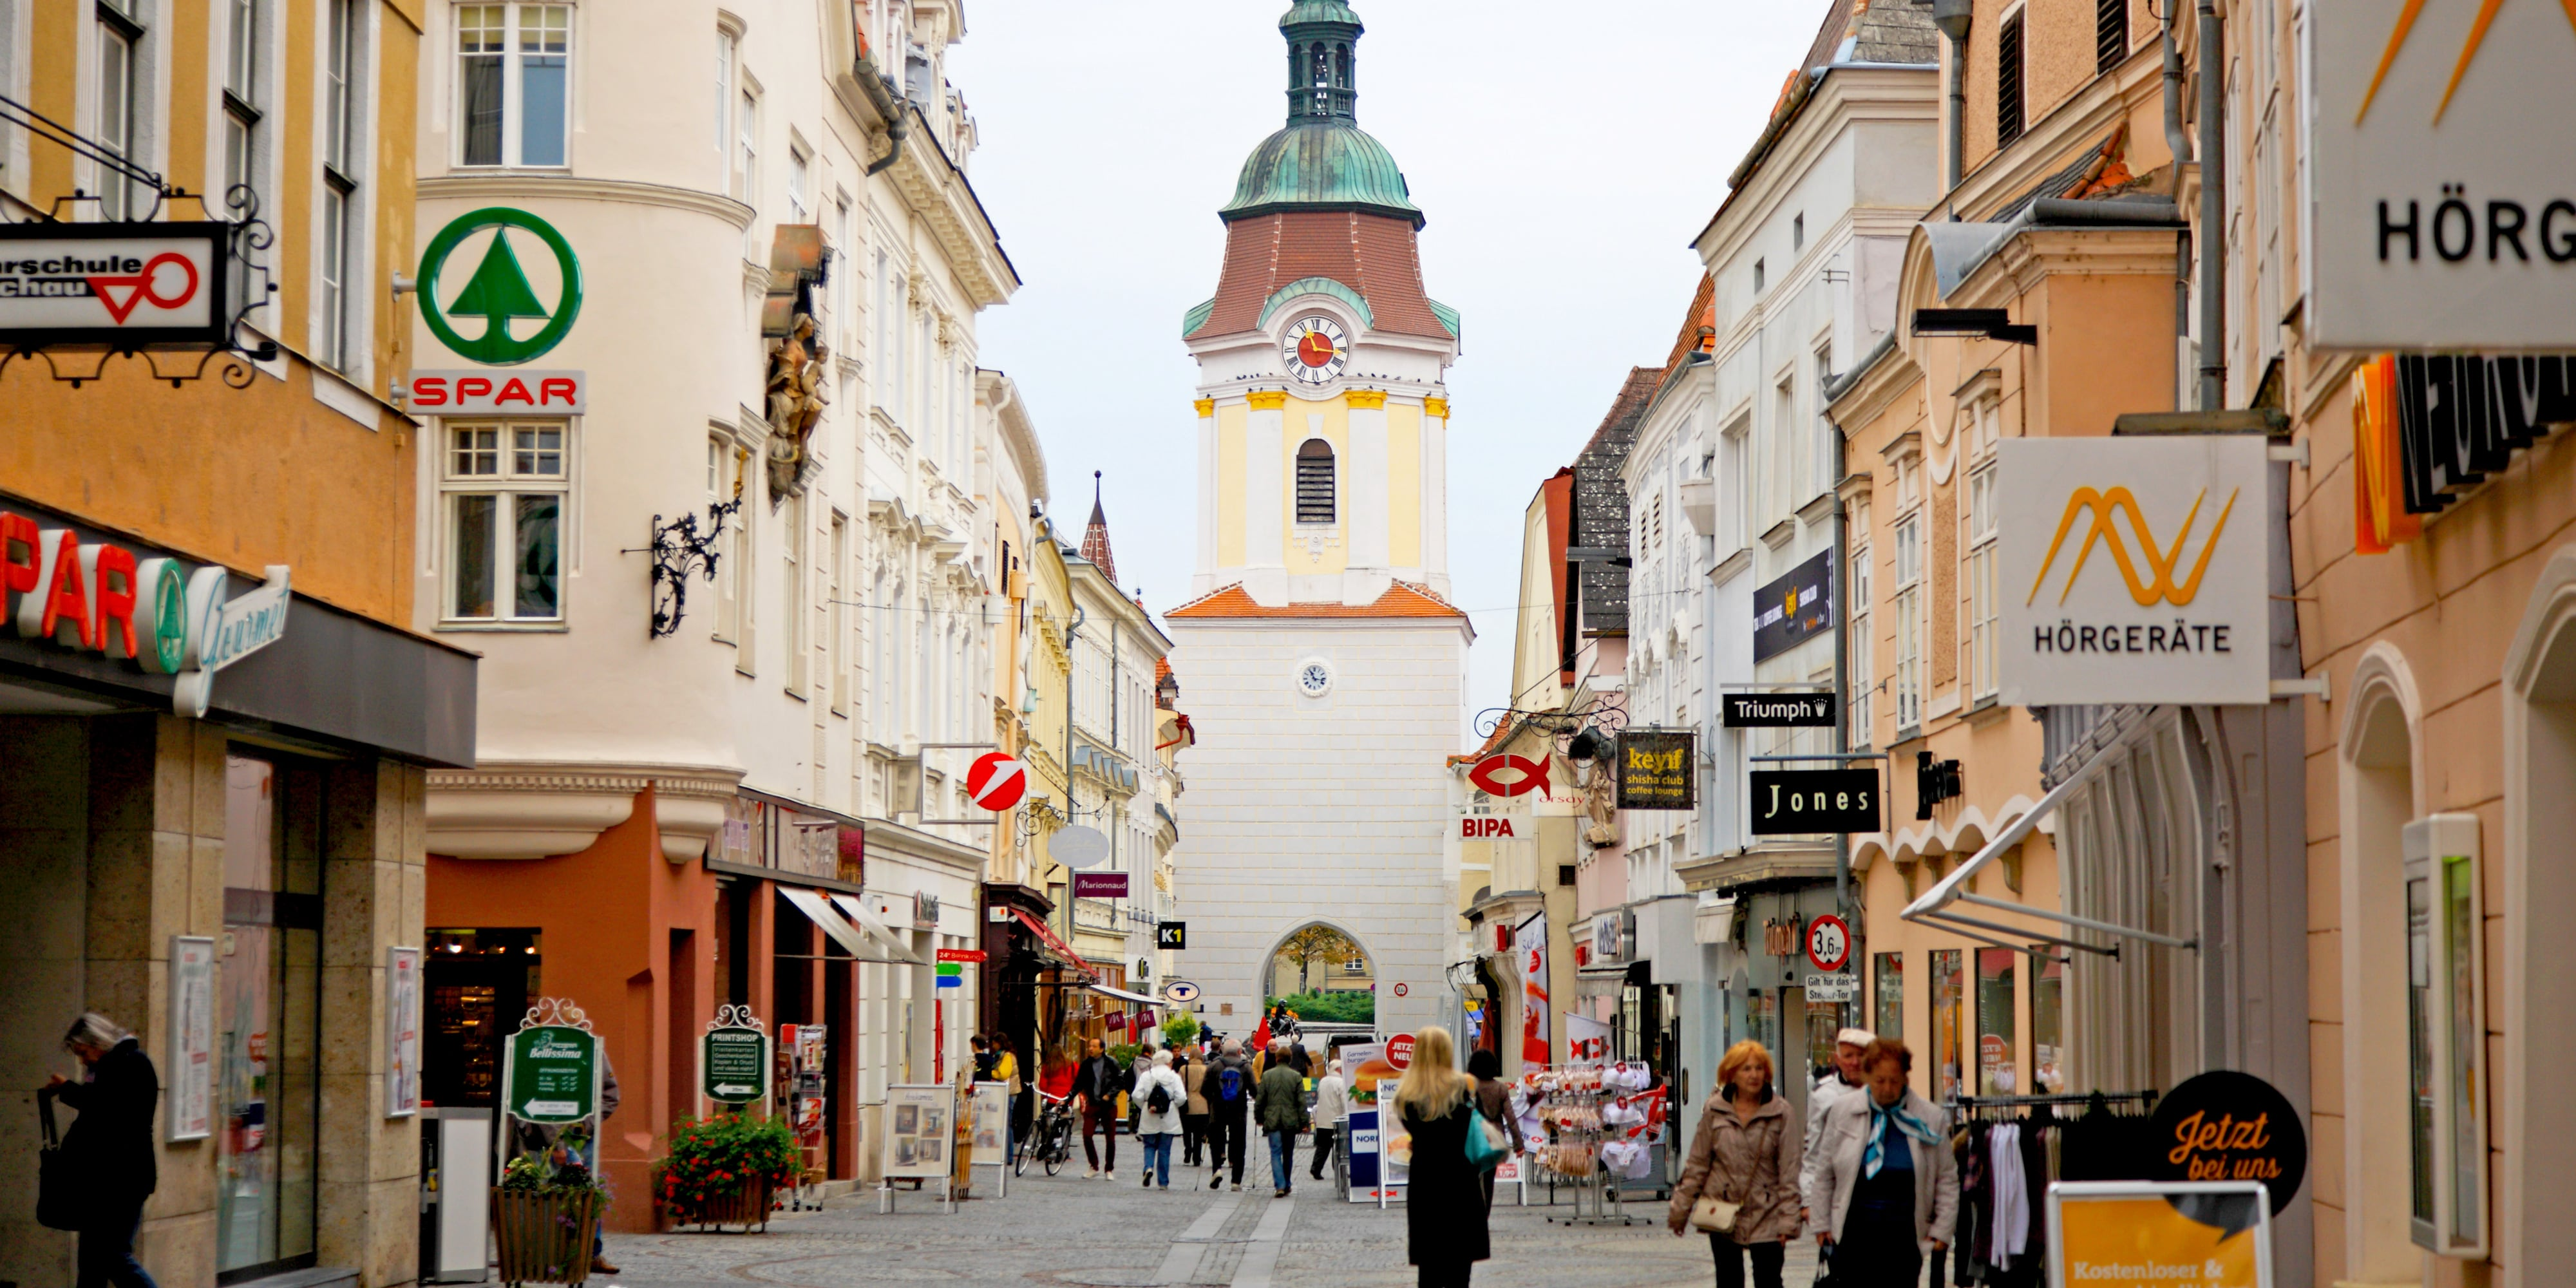 The historic streets of Krems